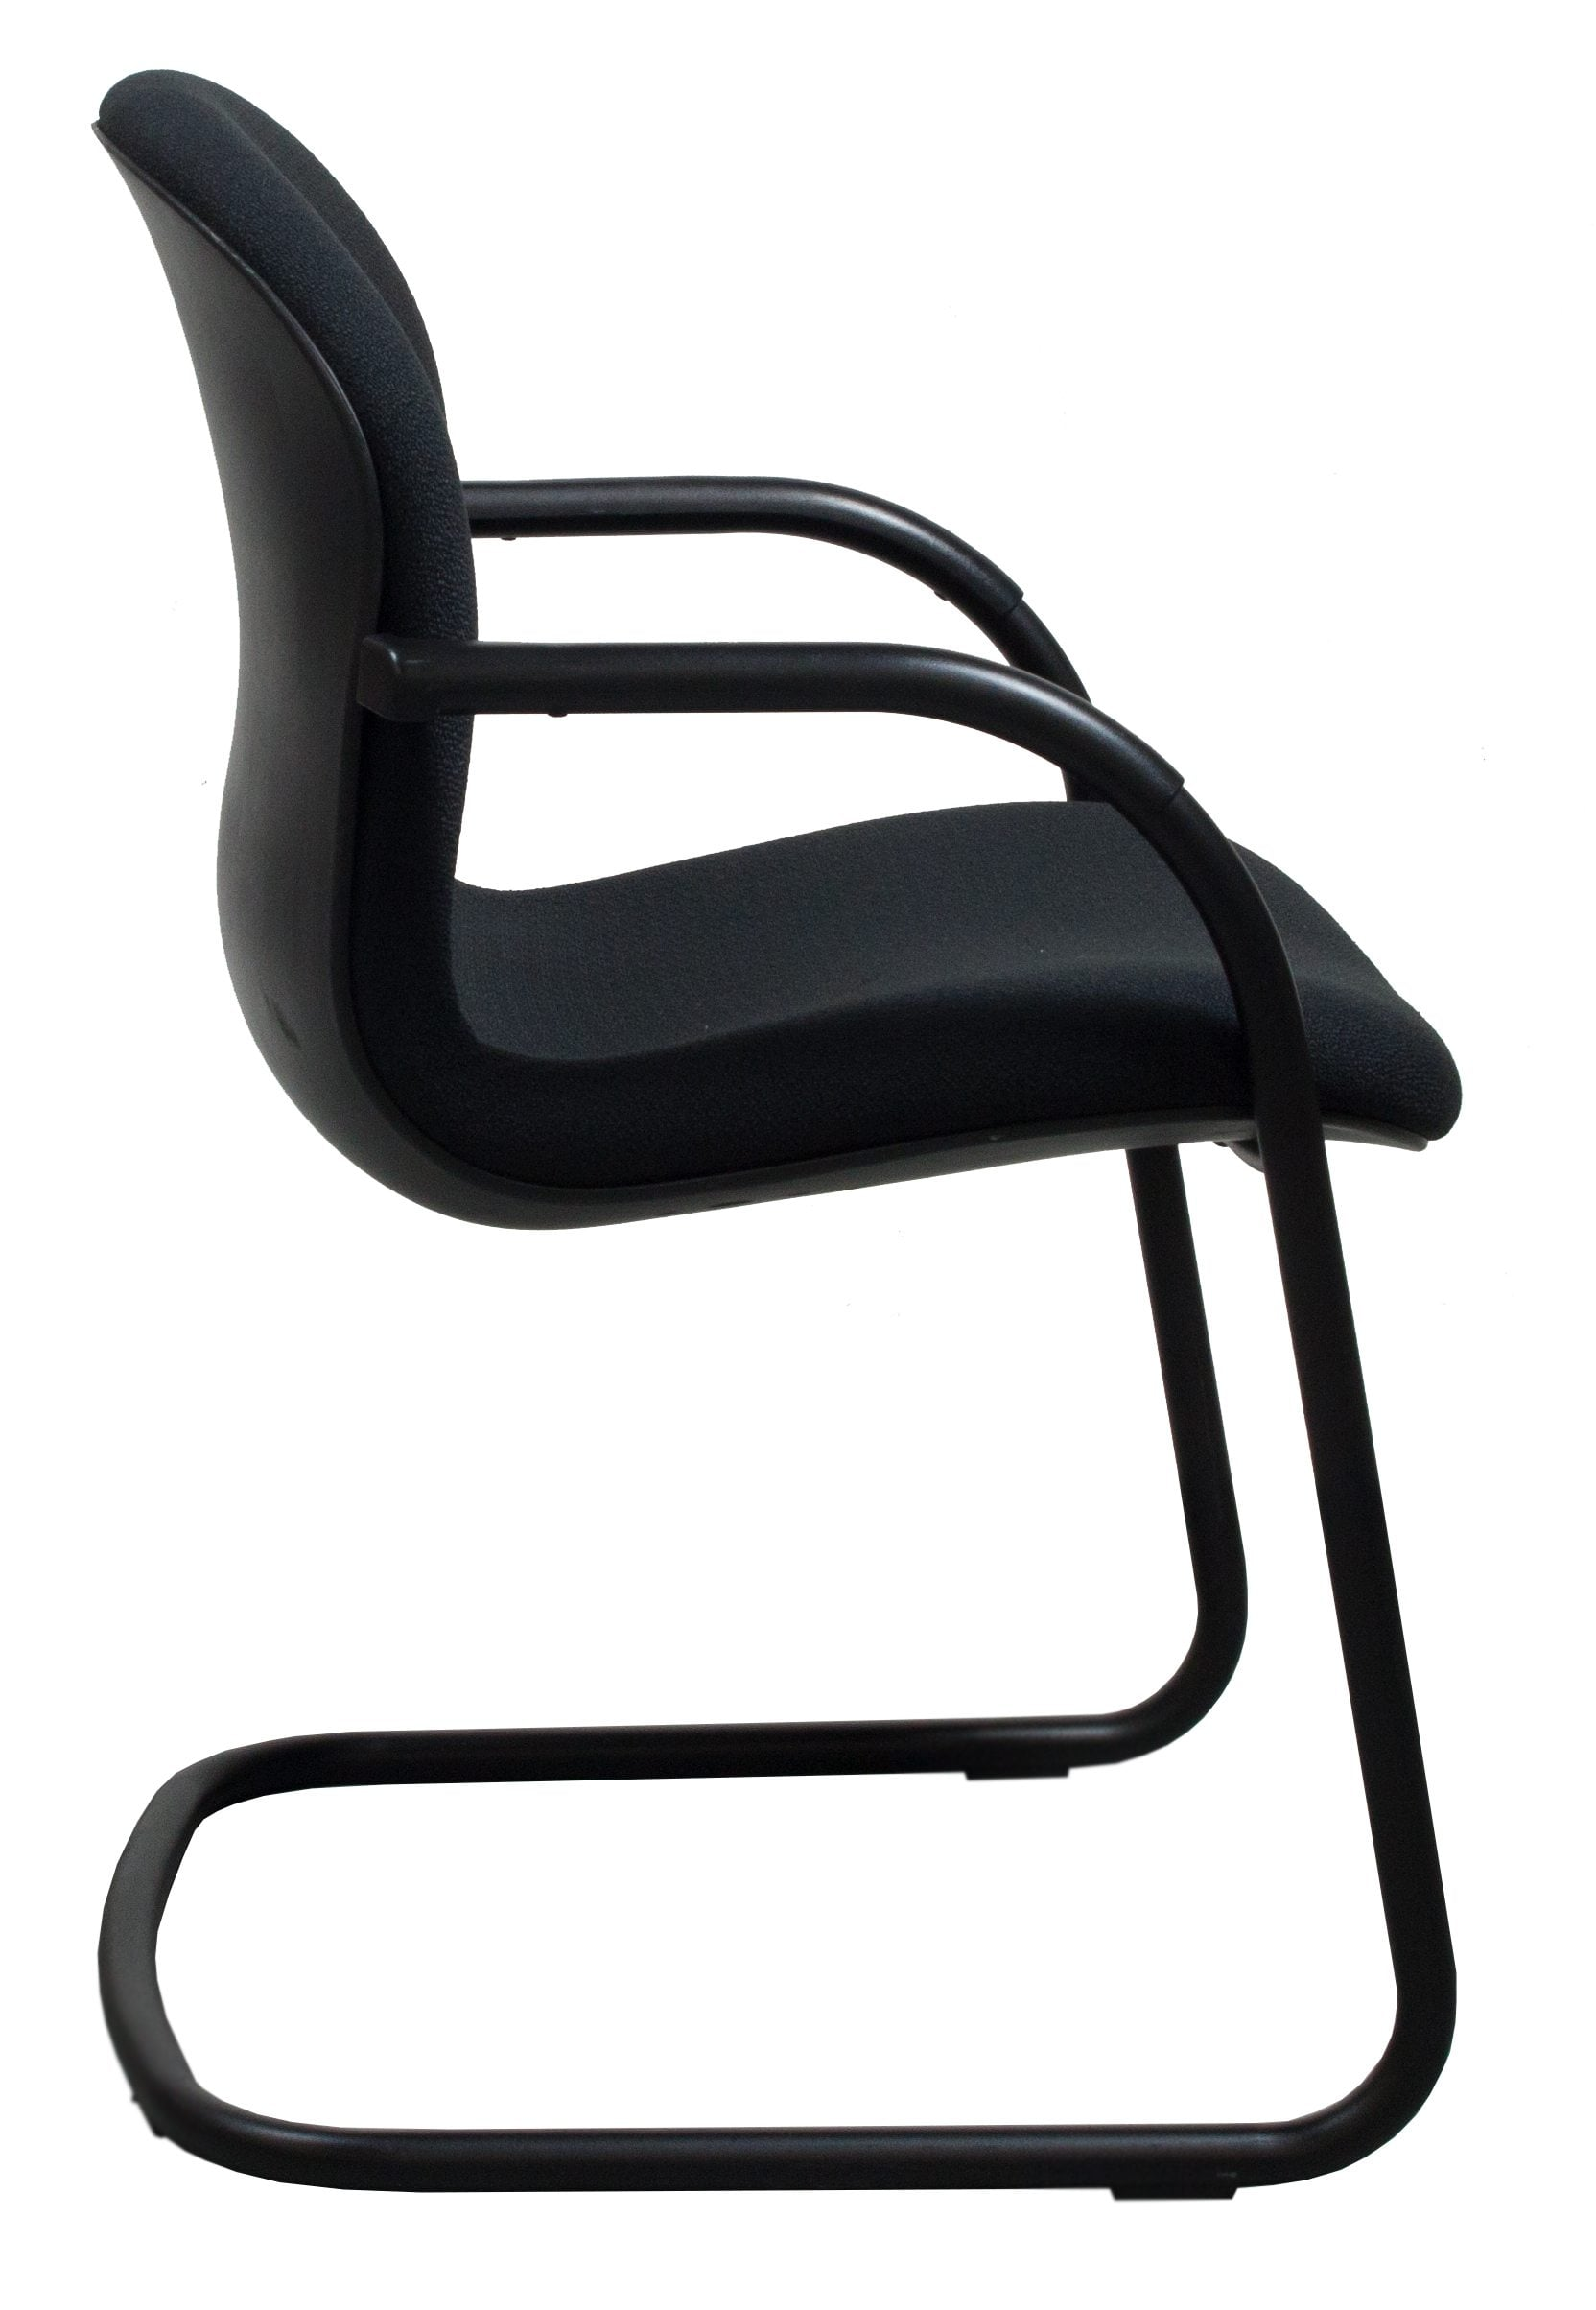 knoll rpm chair margaritaville beach chairs cvs quotrpm quot used side black national office